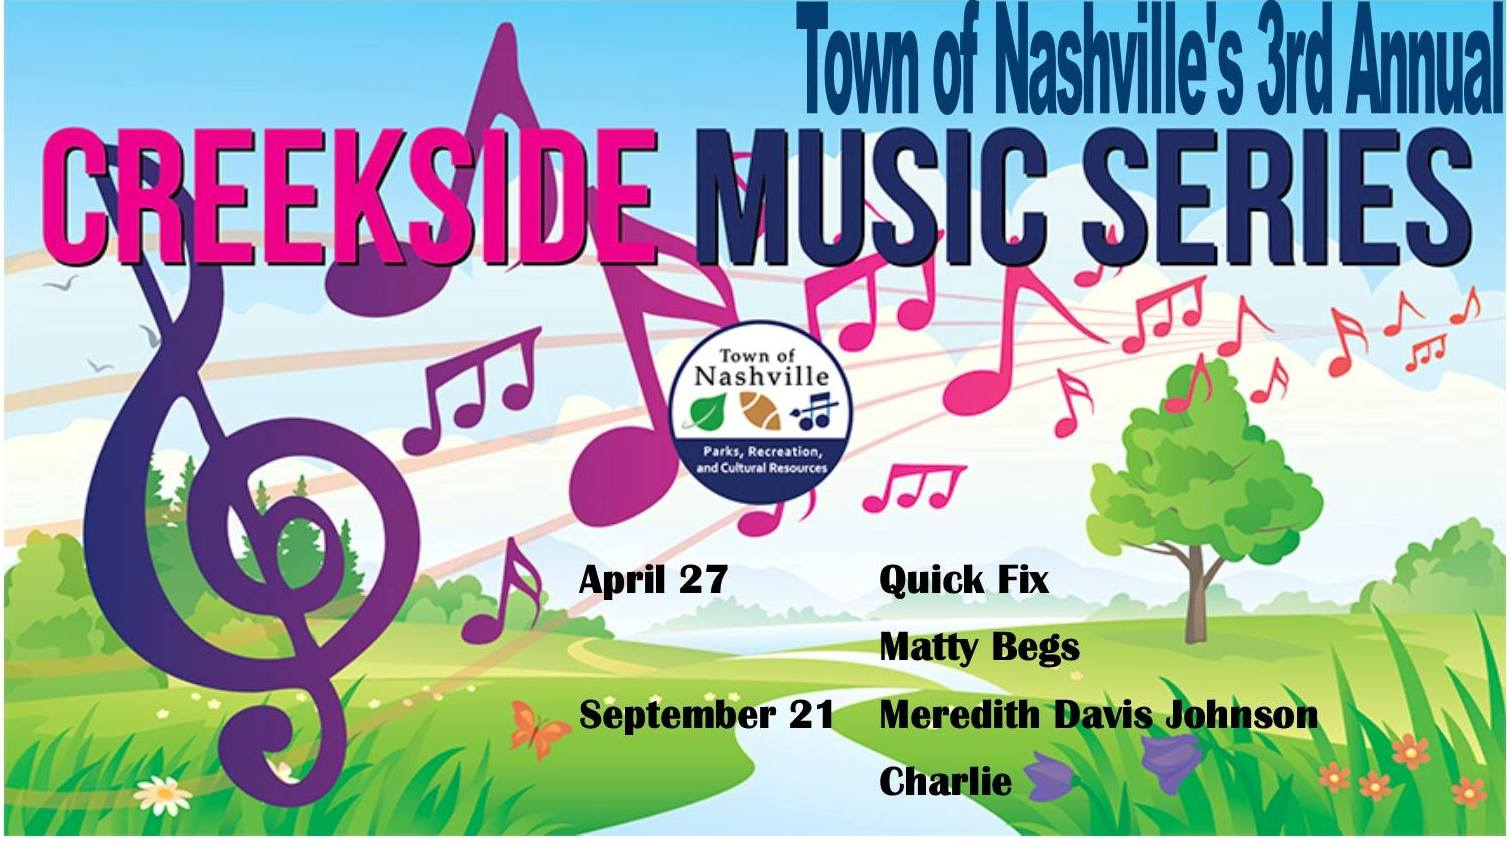 Creekside Music Series Dates Flyer